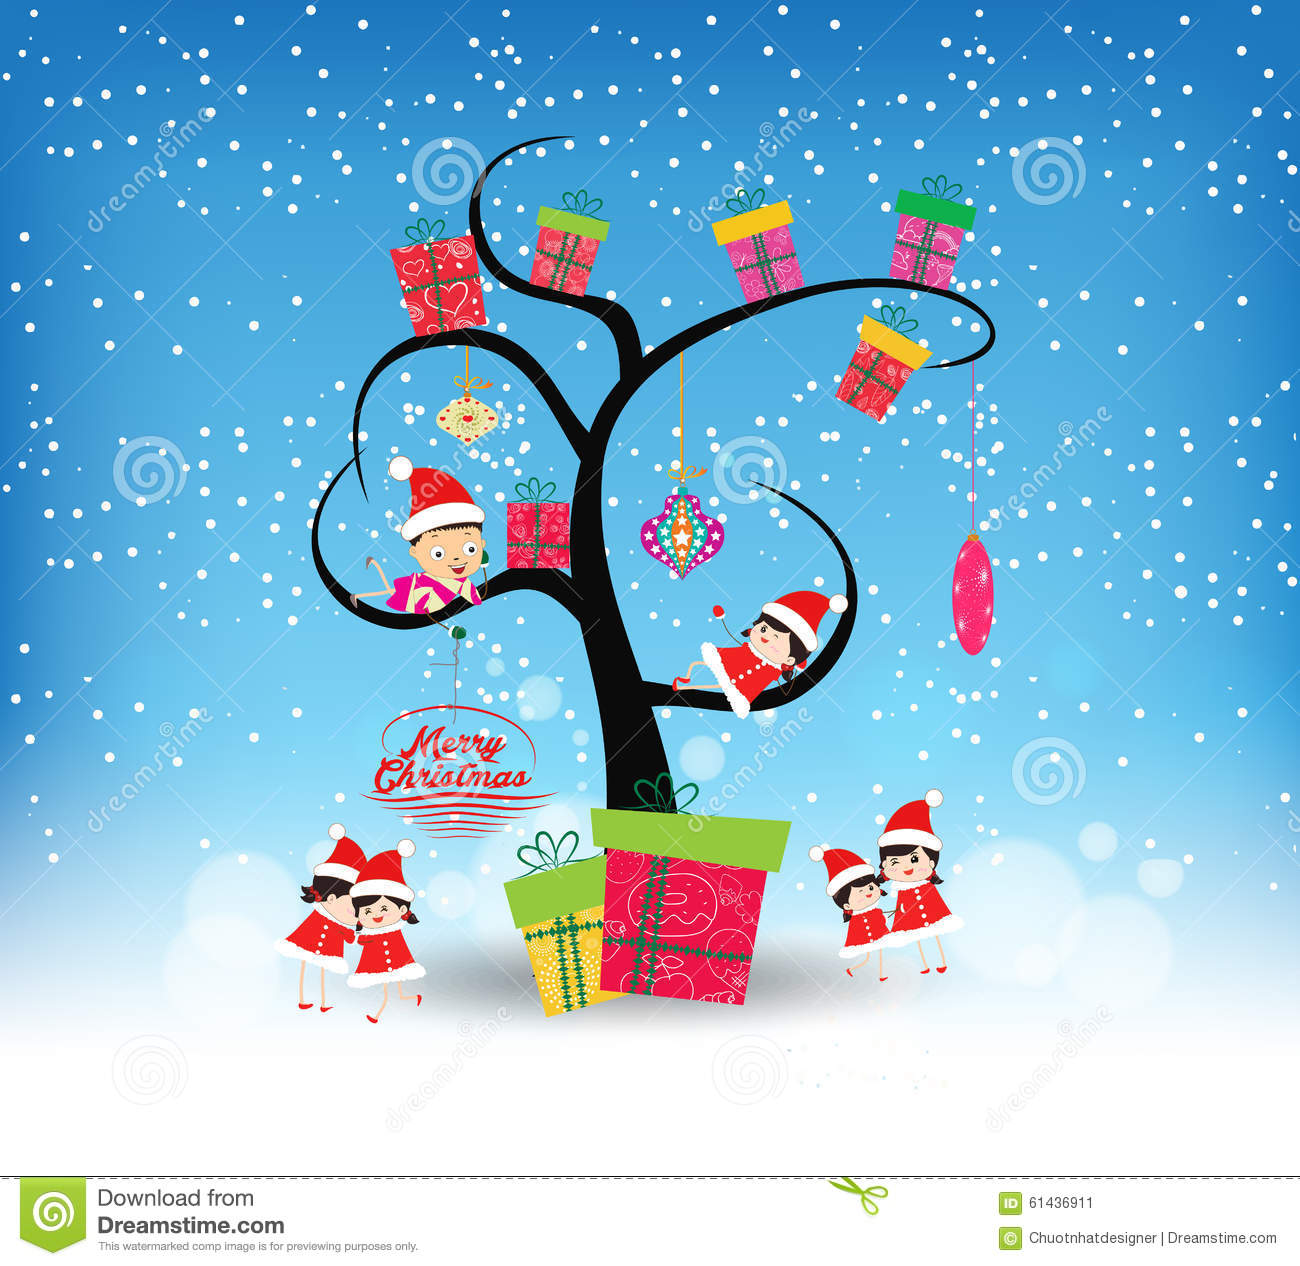 Merry Christmas Funny Images.Happy Merry Christmas With Funny Kids And Gifts Stock Vector